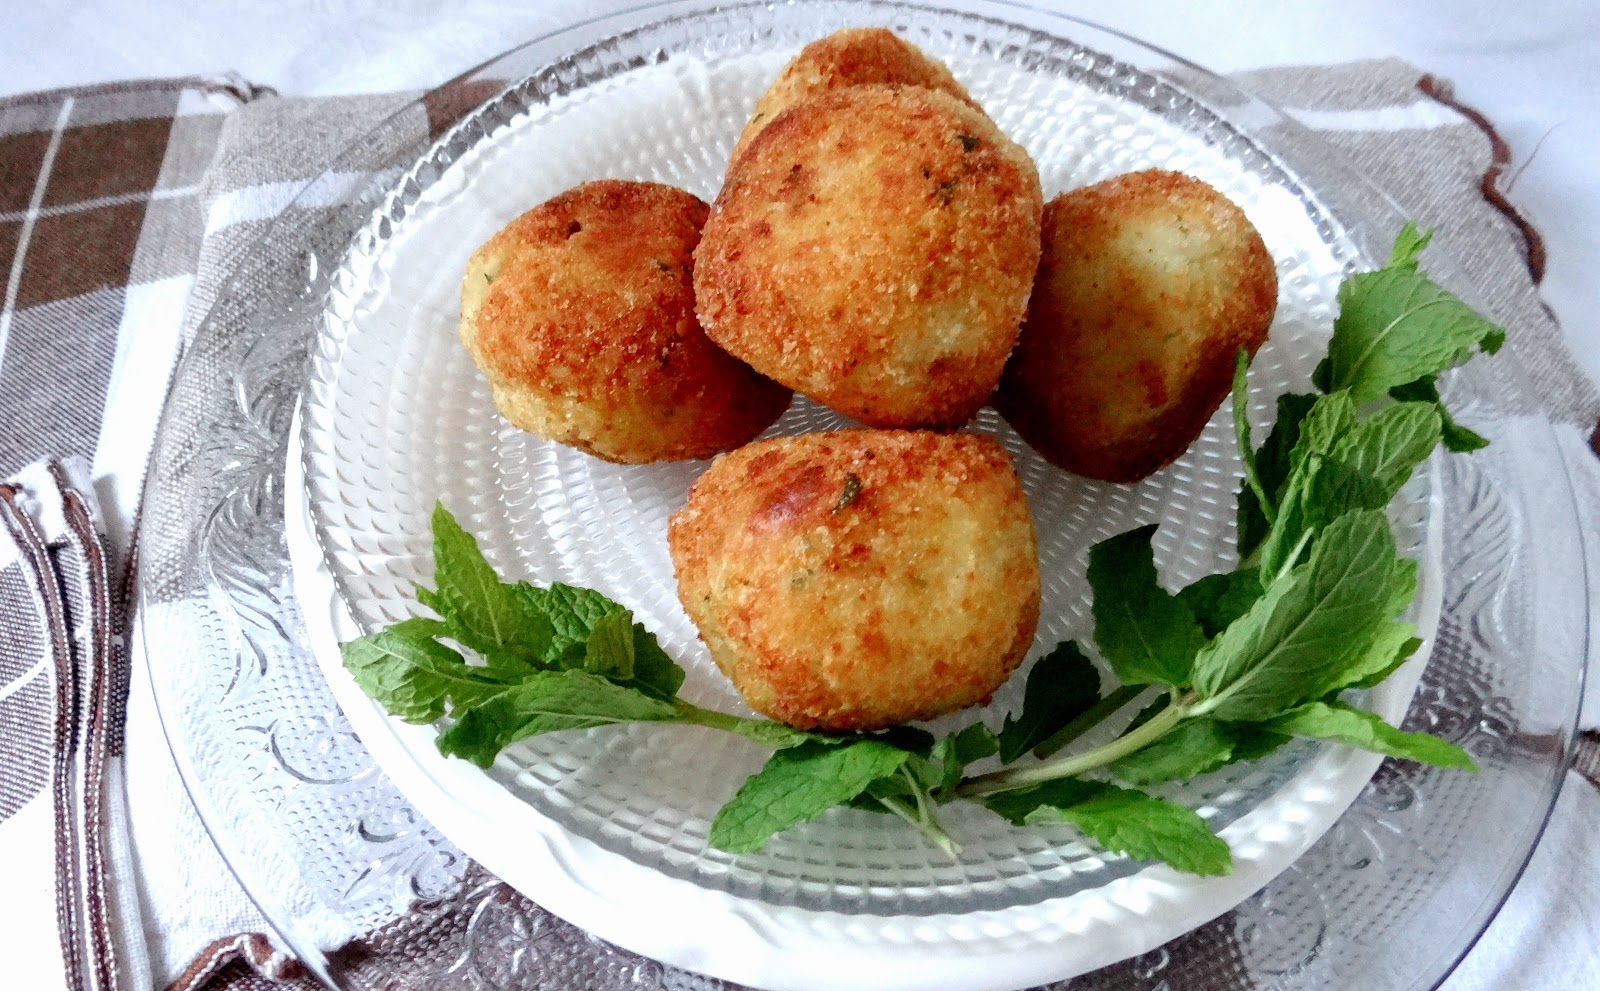 apericena, buffet, finger food, arancini di patate